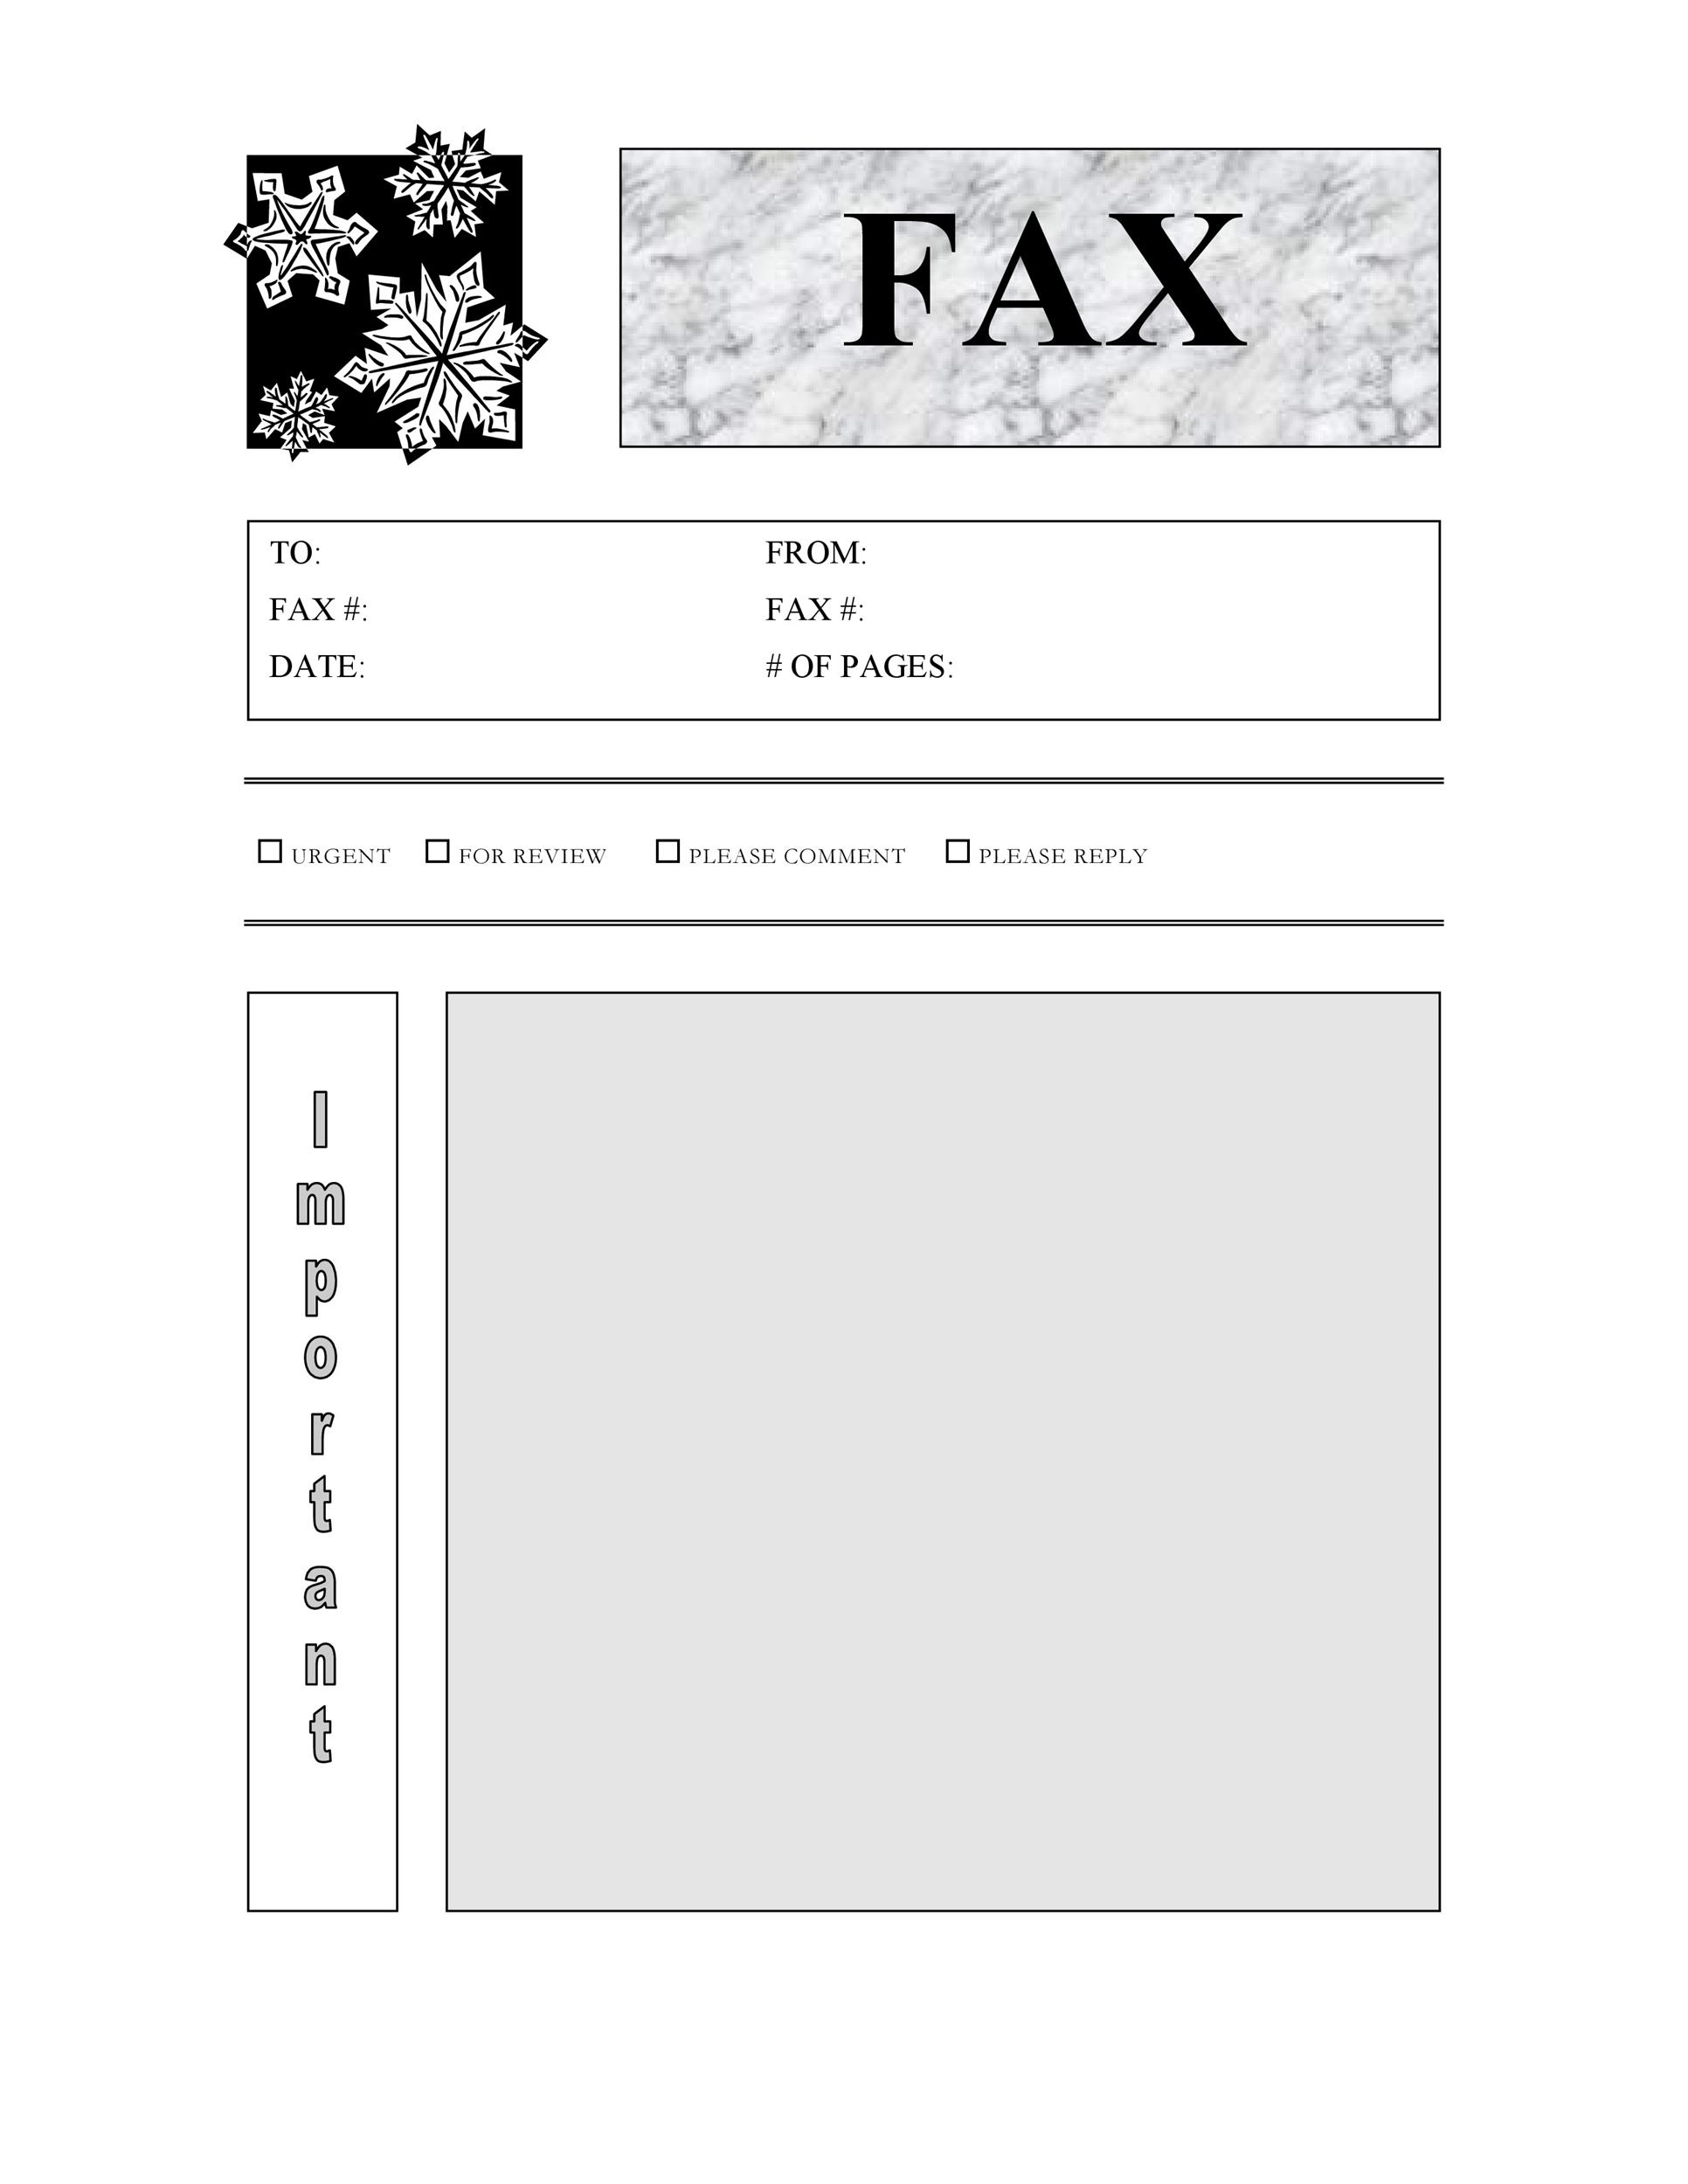 Fax Cover Sheet Template 16